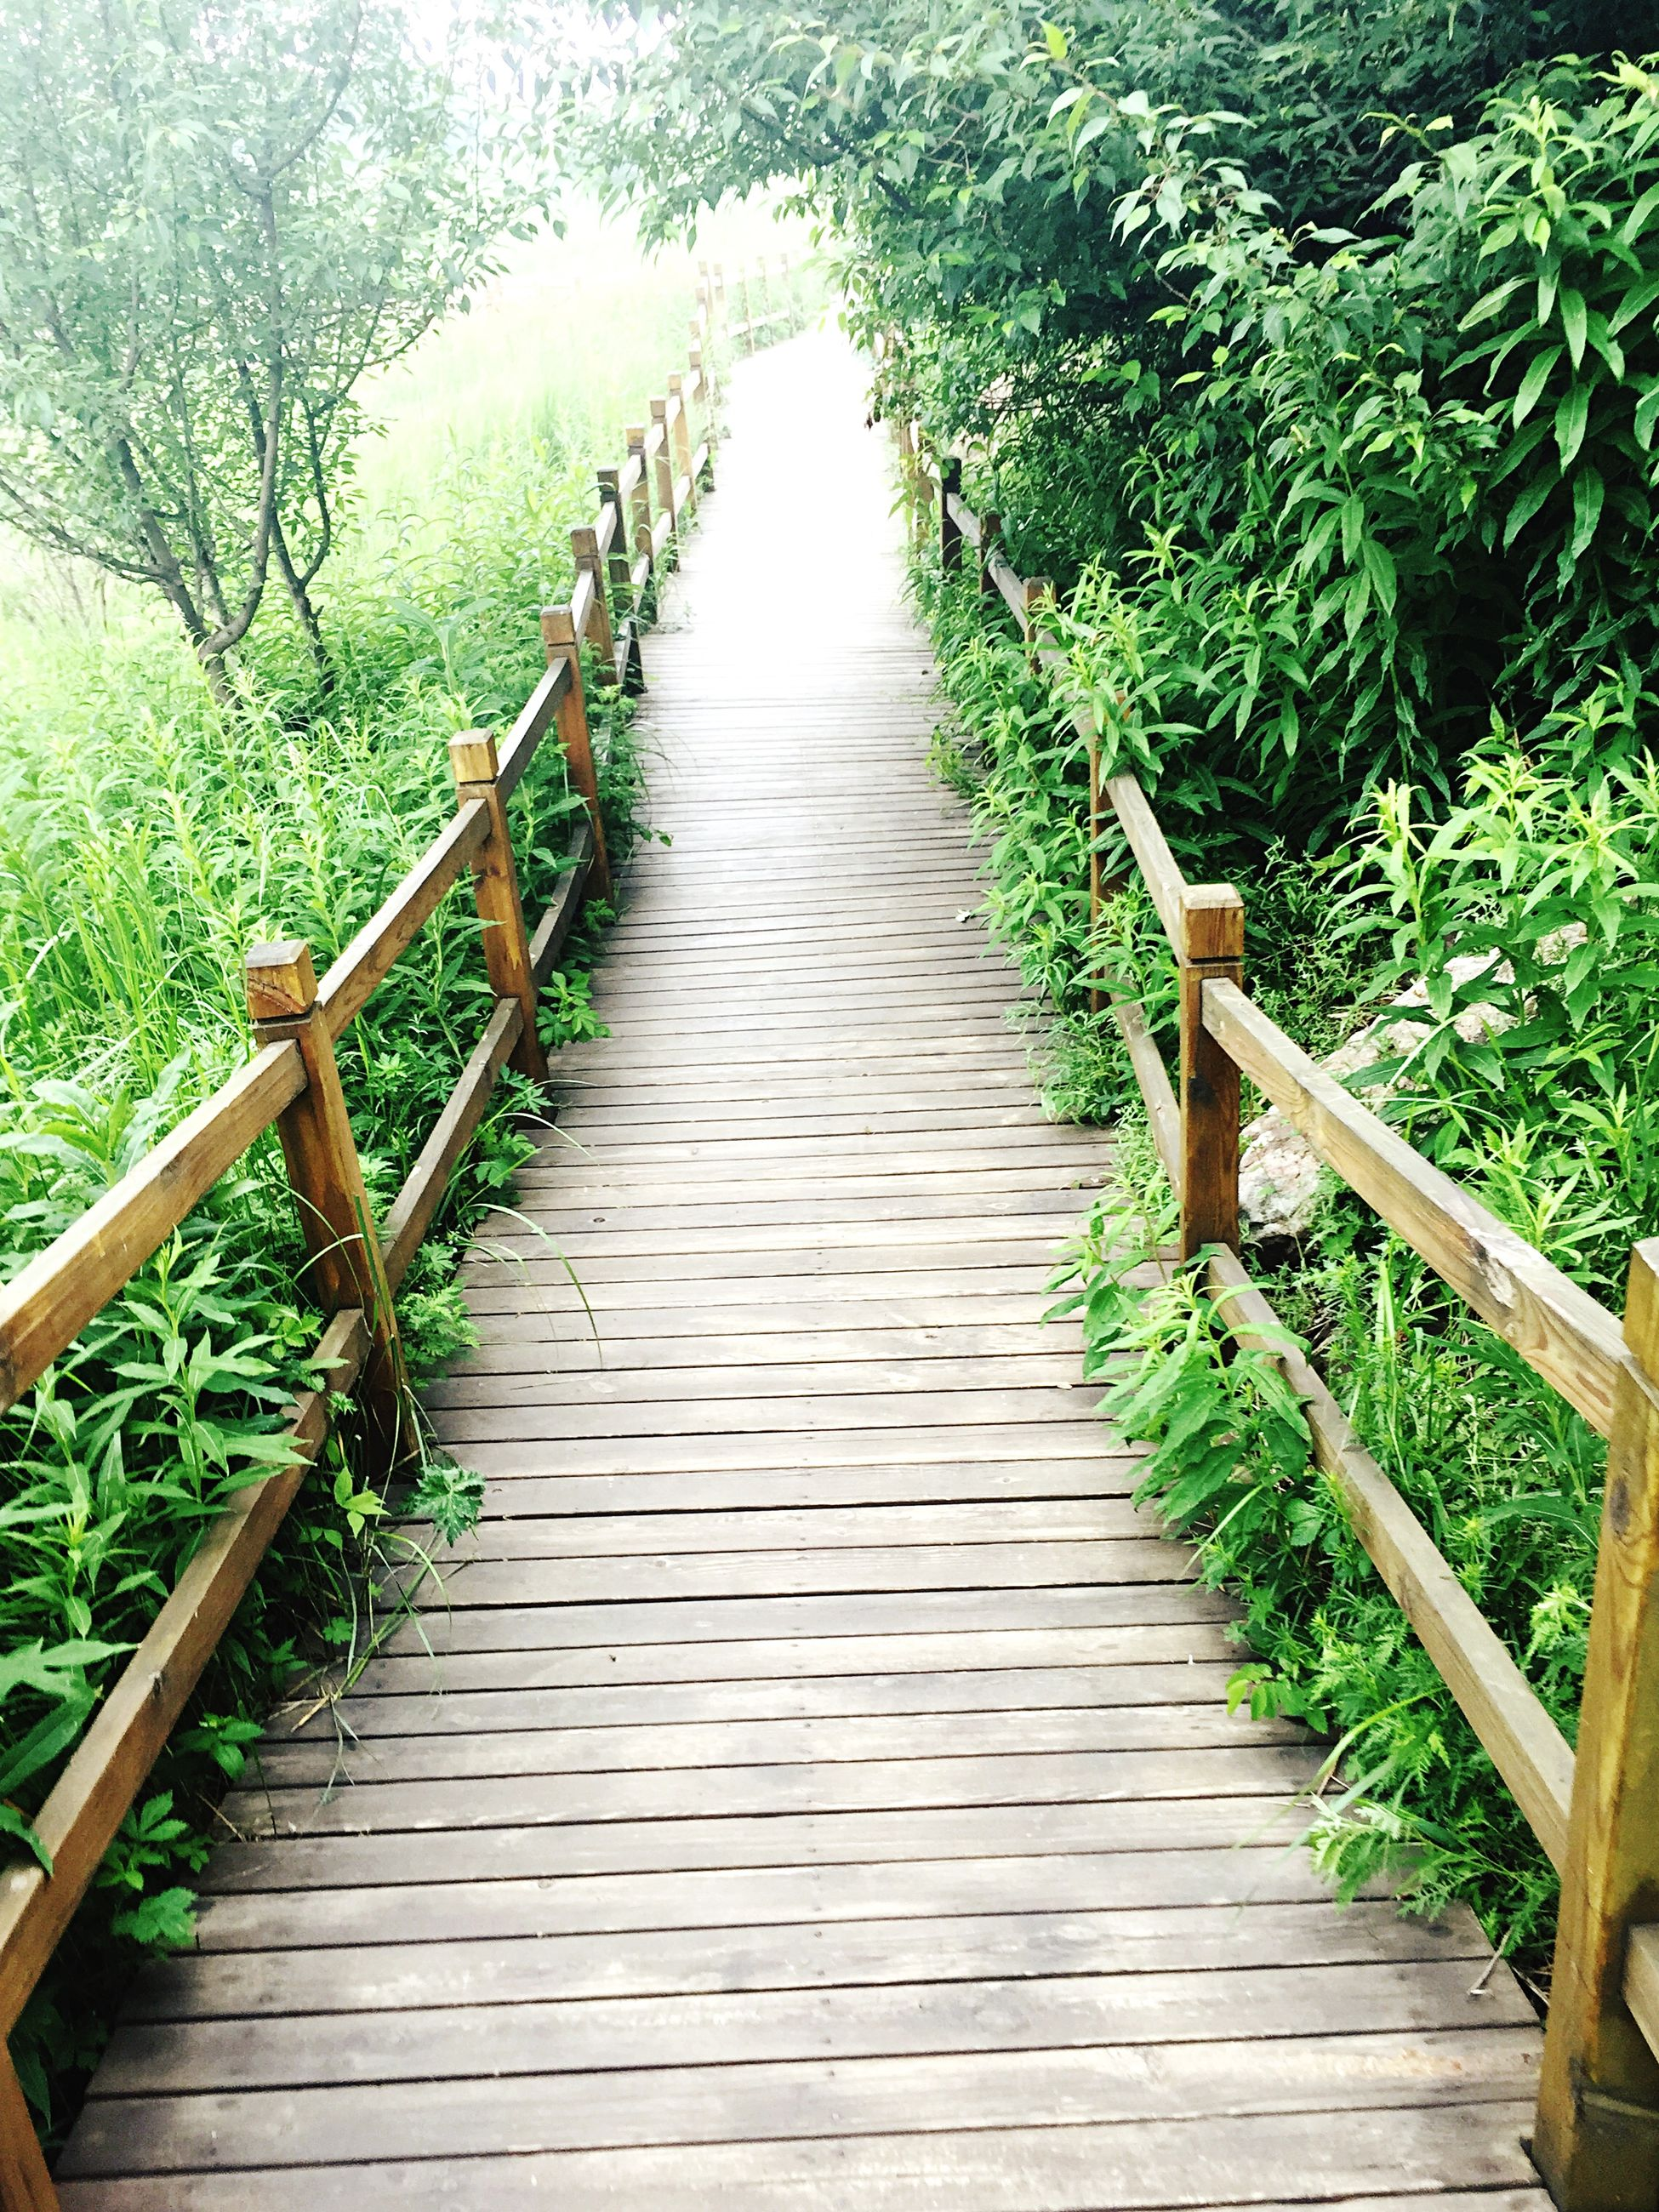 the way forward, railing, diminishing perspective, footbridge, tree, vanishing point, tranquility, narrow, connection, growth, plant, nature, boardwalk, wood - material, walkway, long, no people, tranquil scene, green color, outdoors